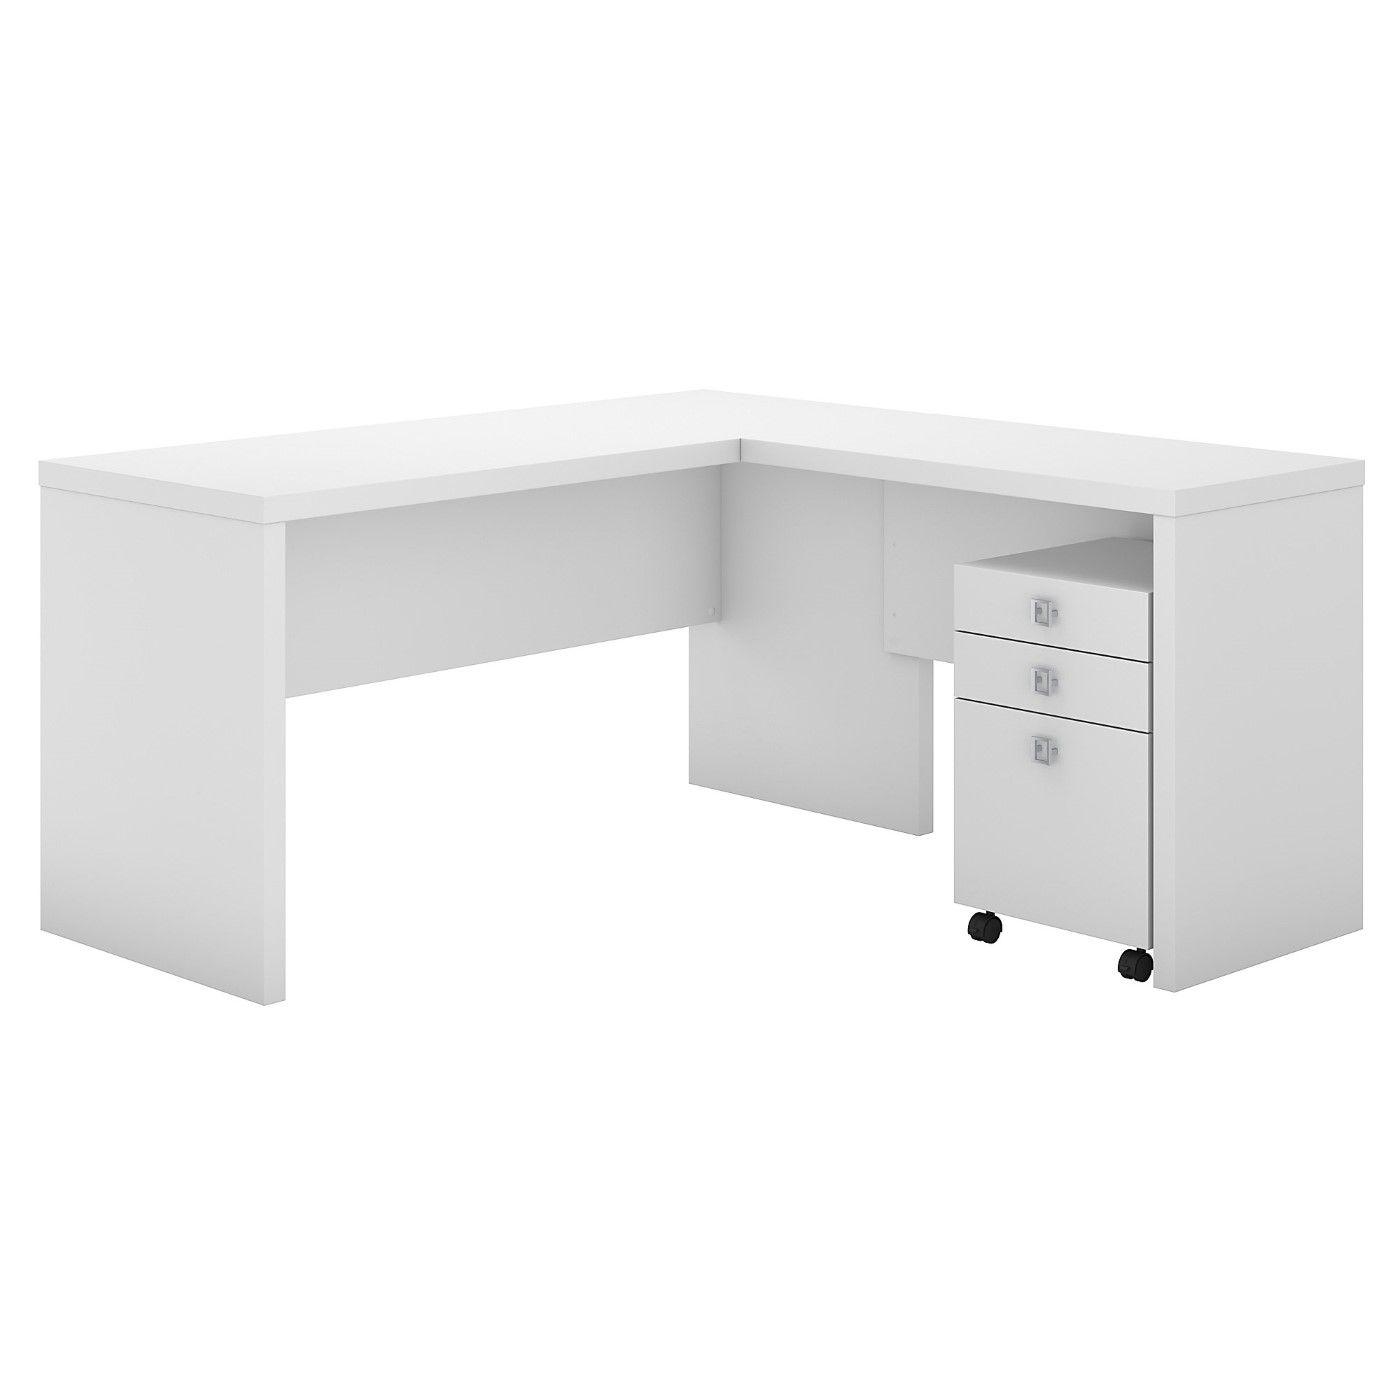 OFFICE BY KATHY IRELAND� ECHO L SHAPED DESK WITH MOBILE FILE CABINET. FREE SHIPPING